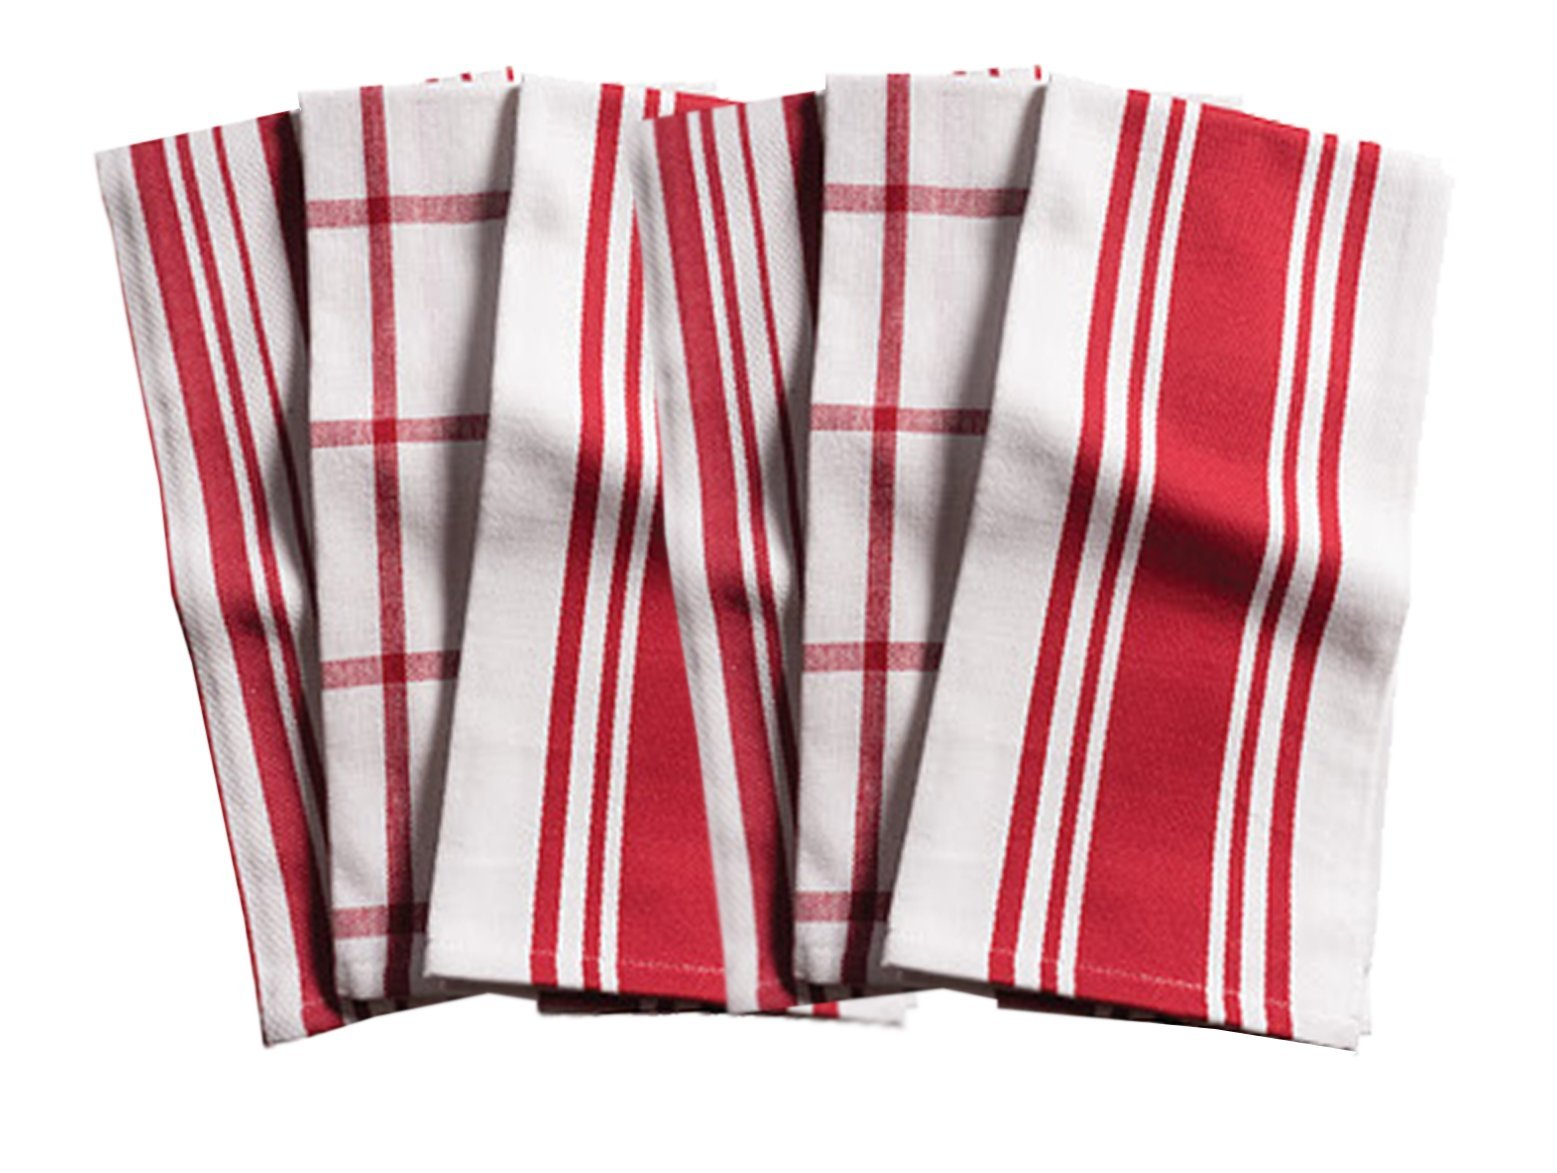 KAF Home Kitchen Towels, Set of 6, Cherry & White, 100% Cotton, Machine Washable, Ultra Absorbent